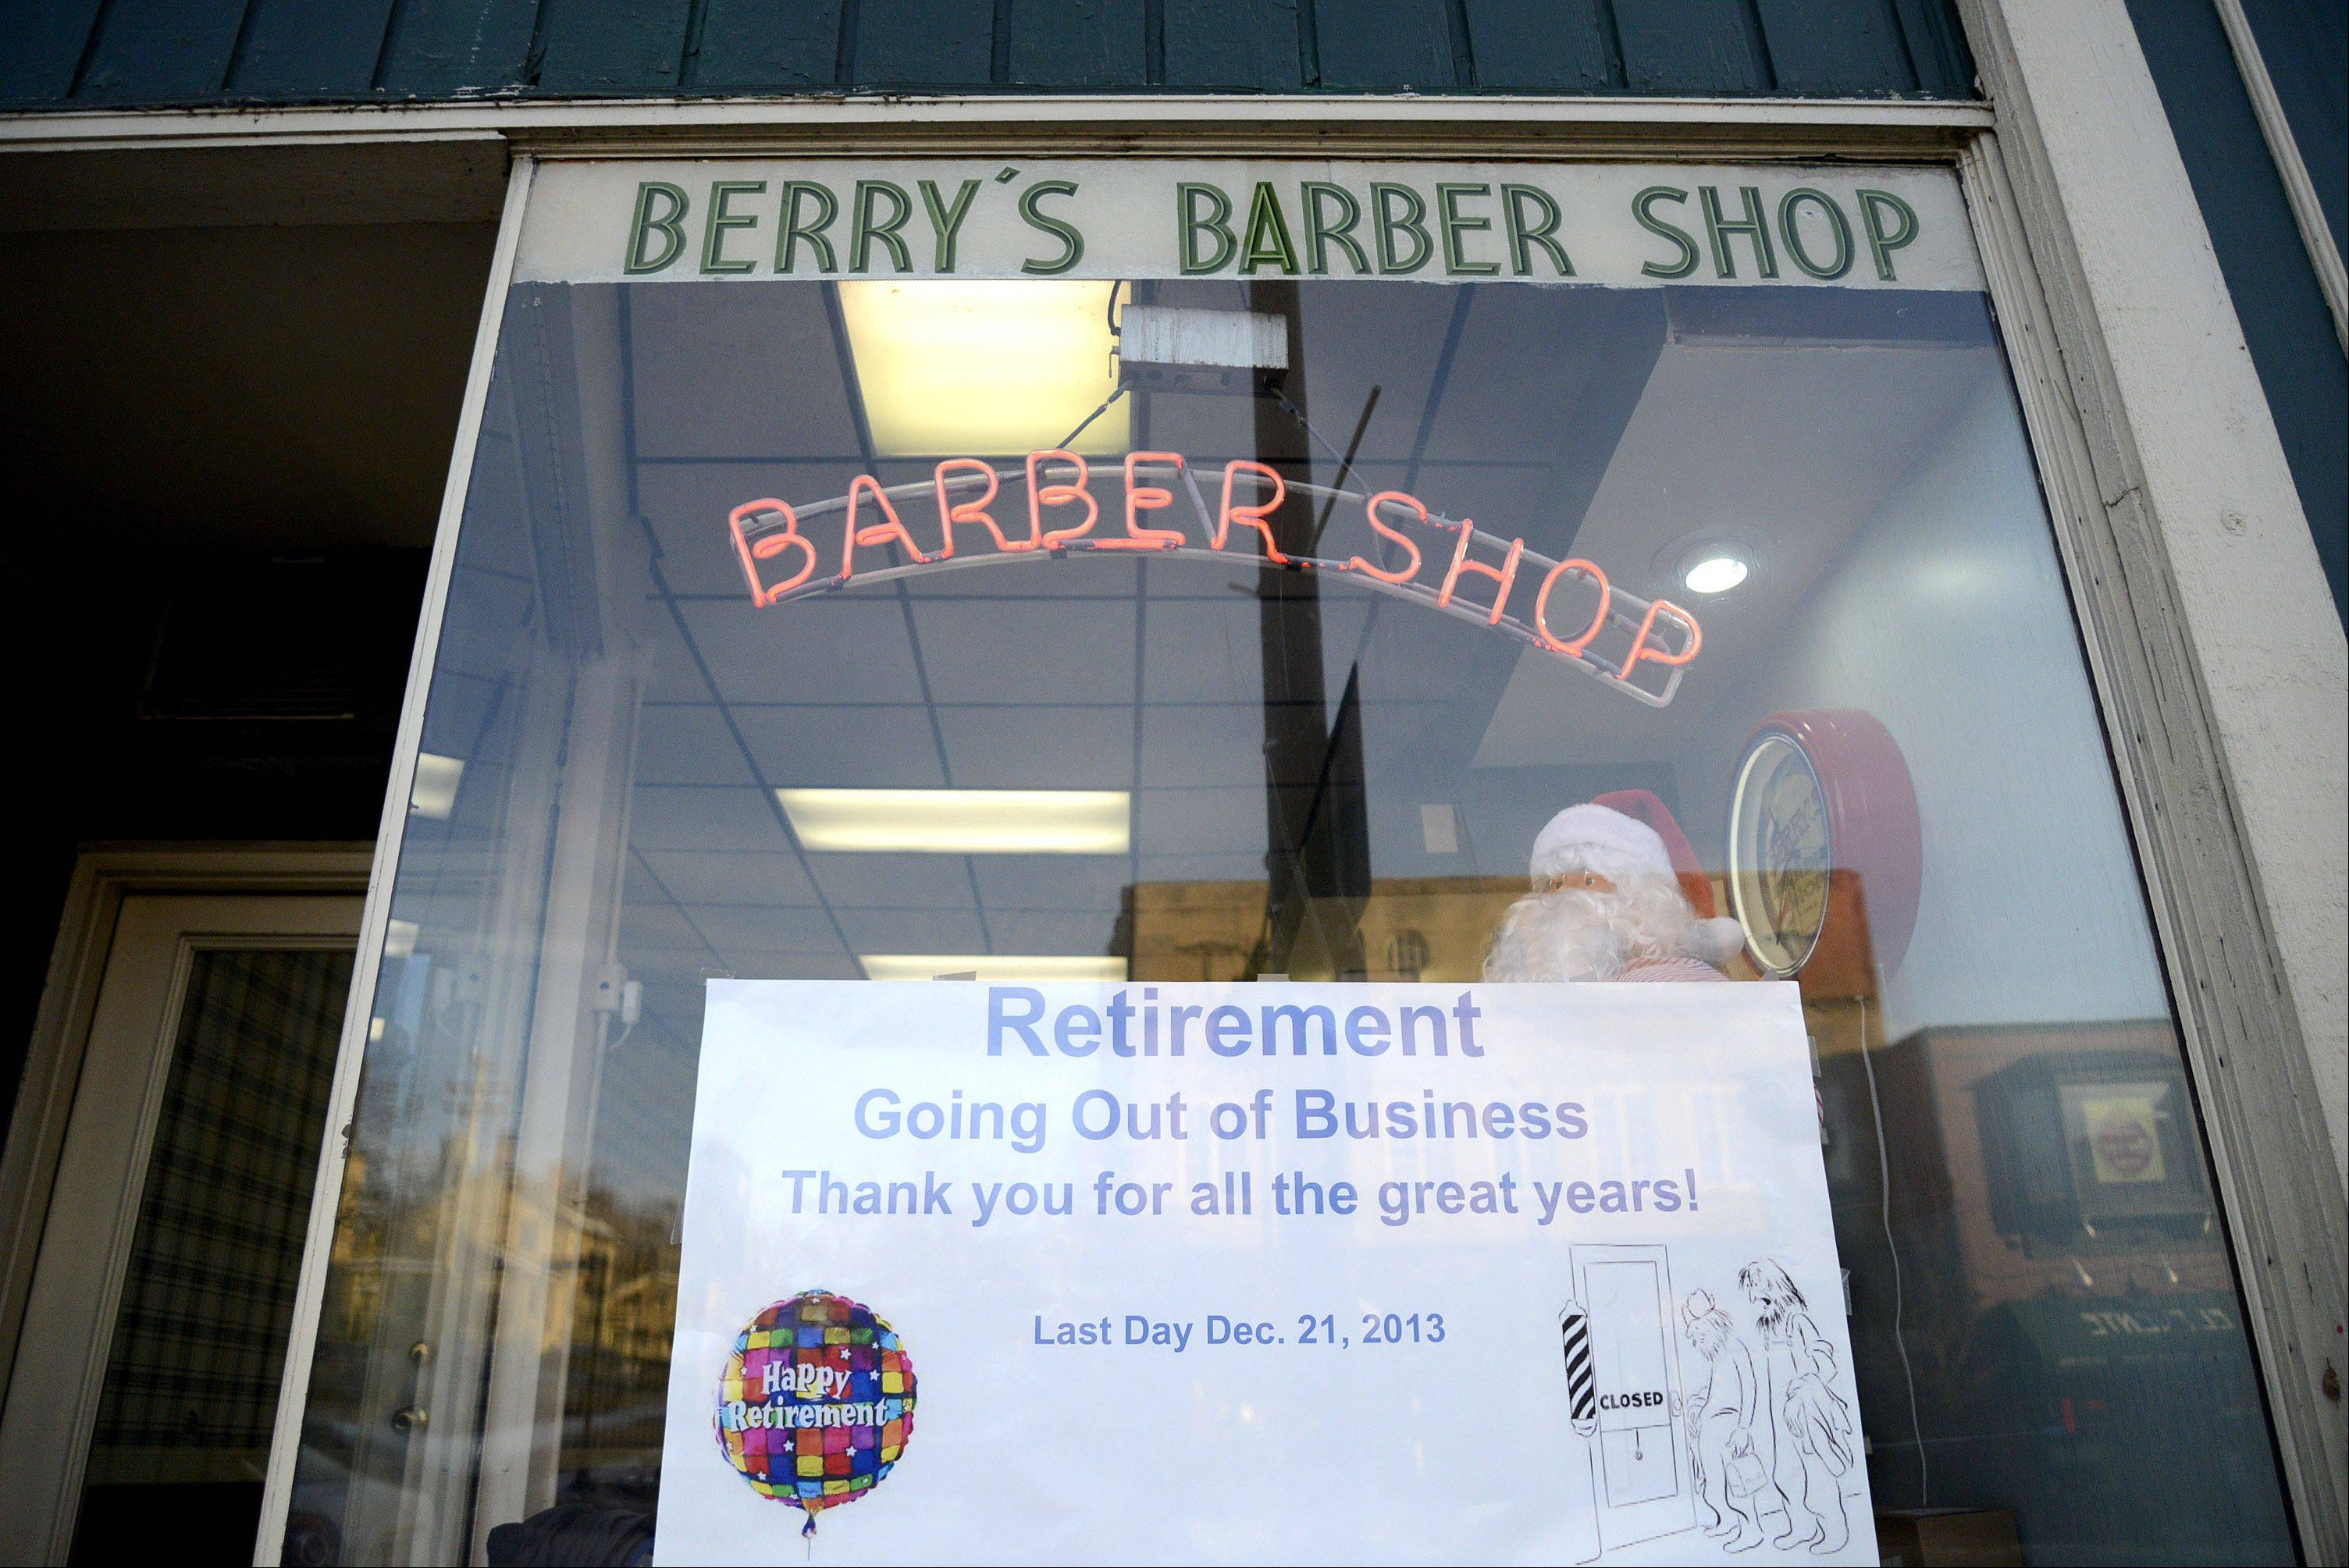 Ron Saltzgiver is retiring after 45 years as a barber in downtown St. Charles. He bought Berry's in 1968.